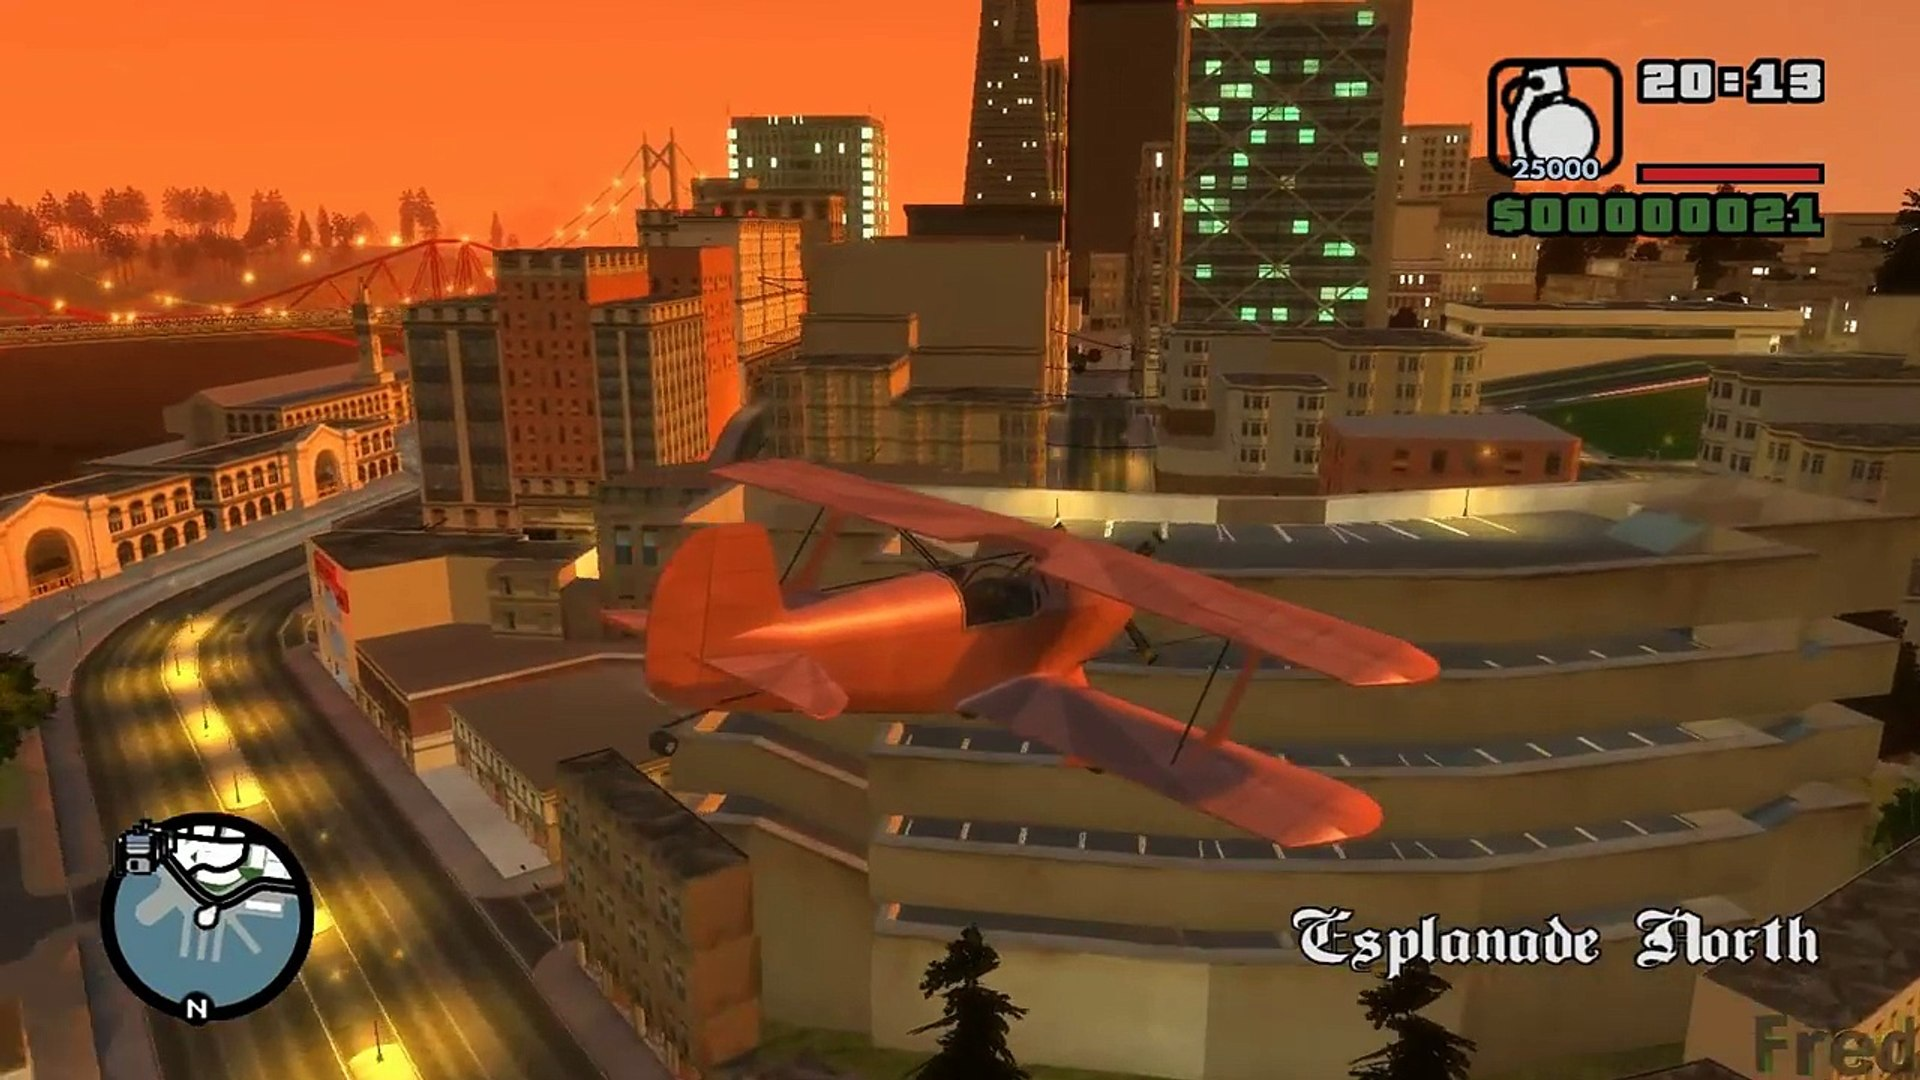 GTA IV San Andreas BETA 3 Gameplay With Audi R8 GT S, Jet Air Combat IV v1.4 Now compatible w/ IVSA³